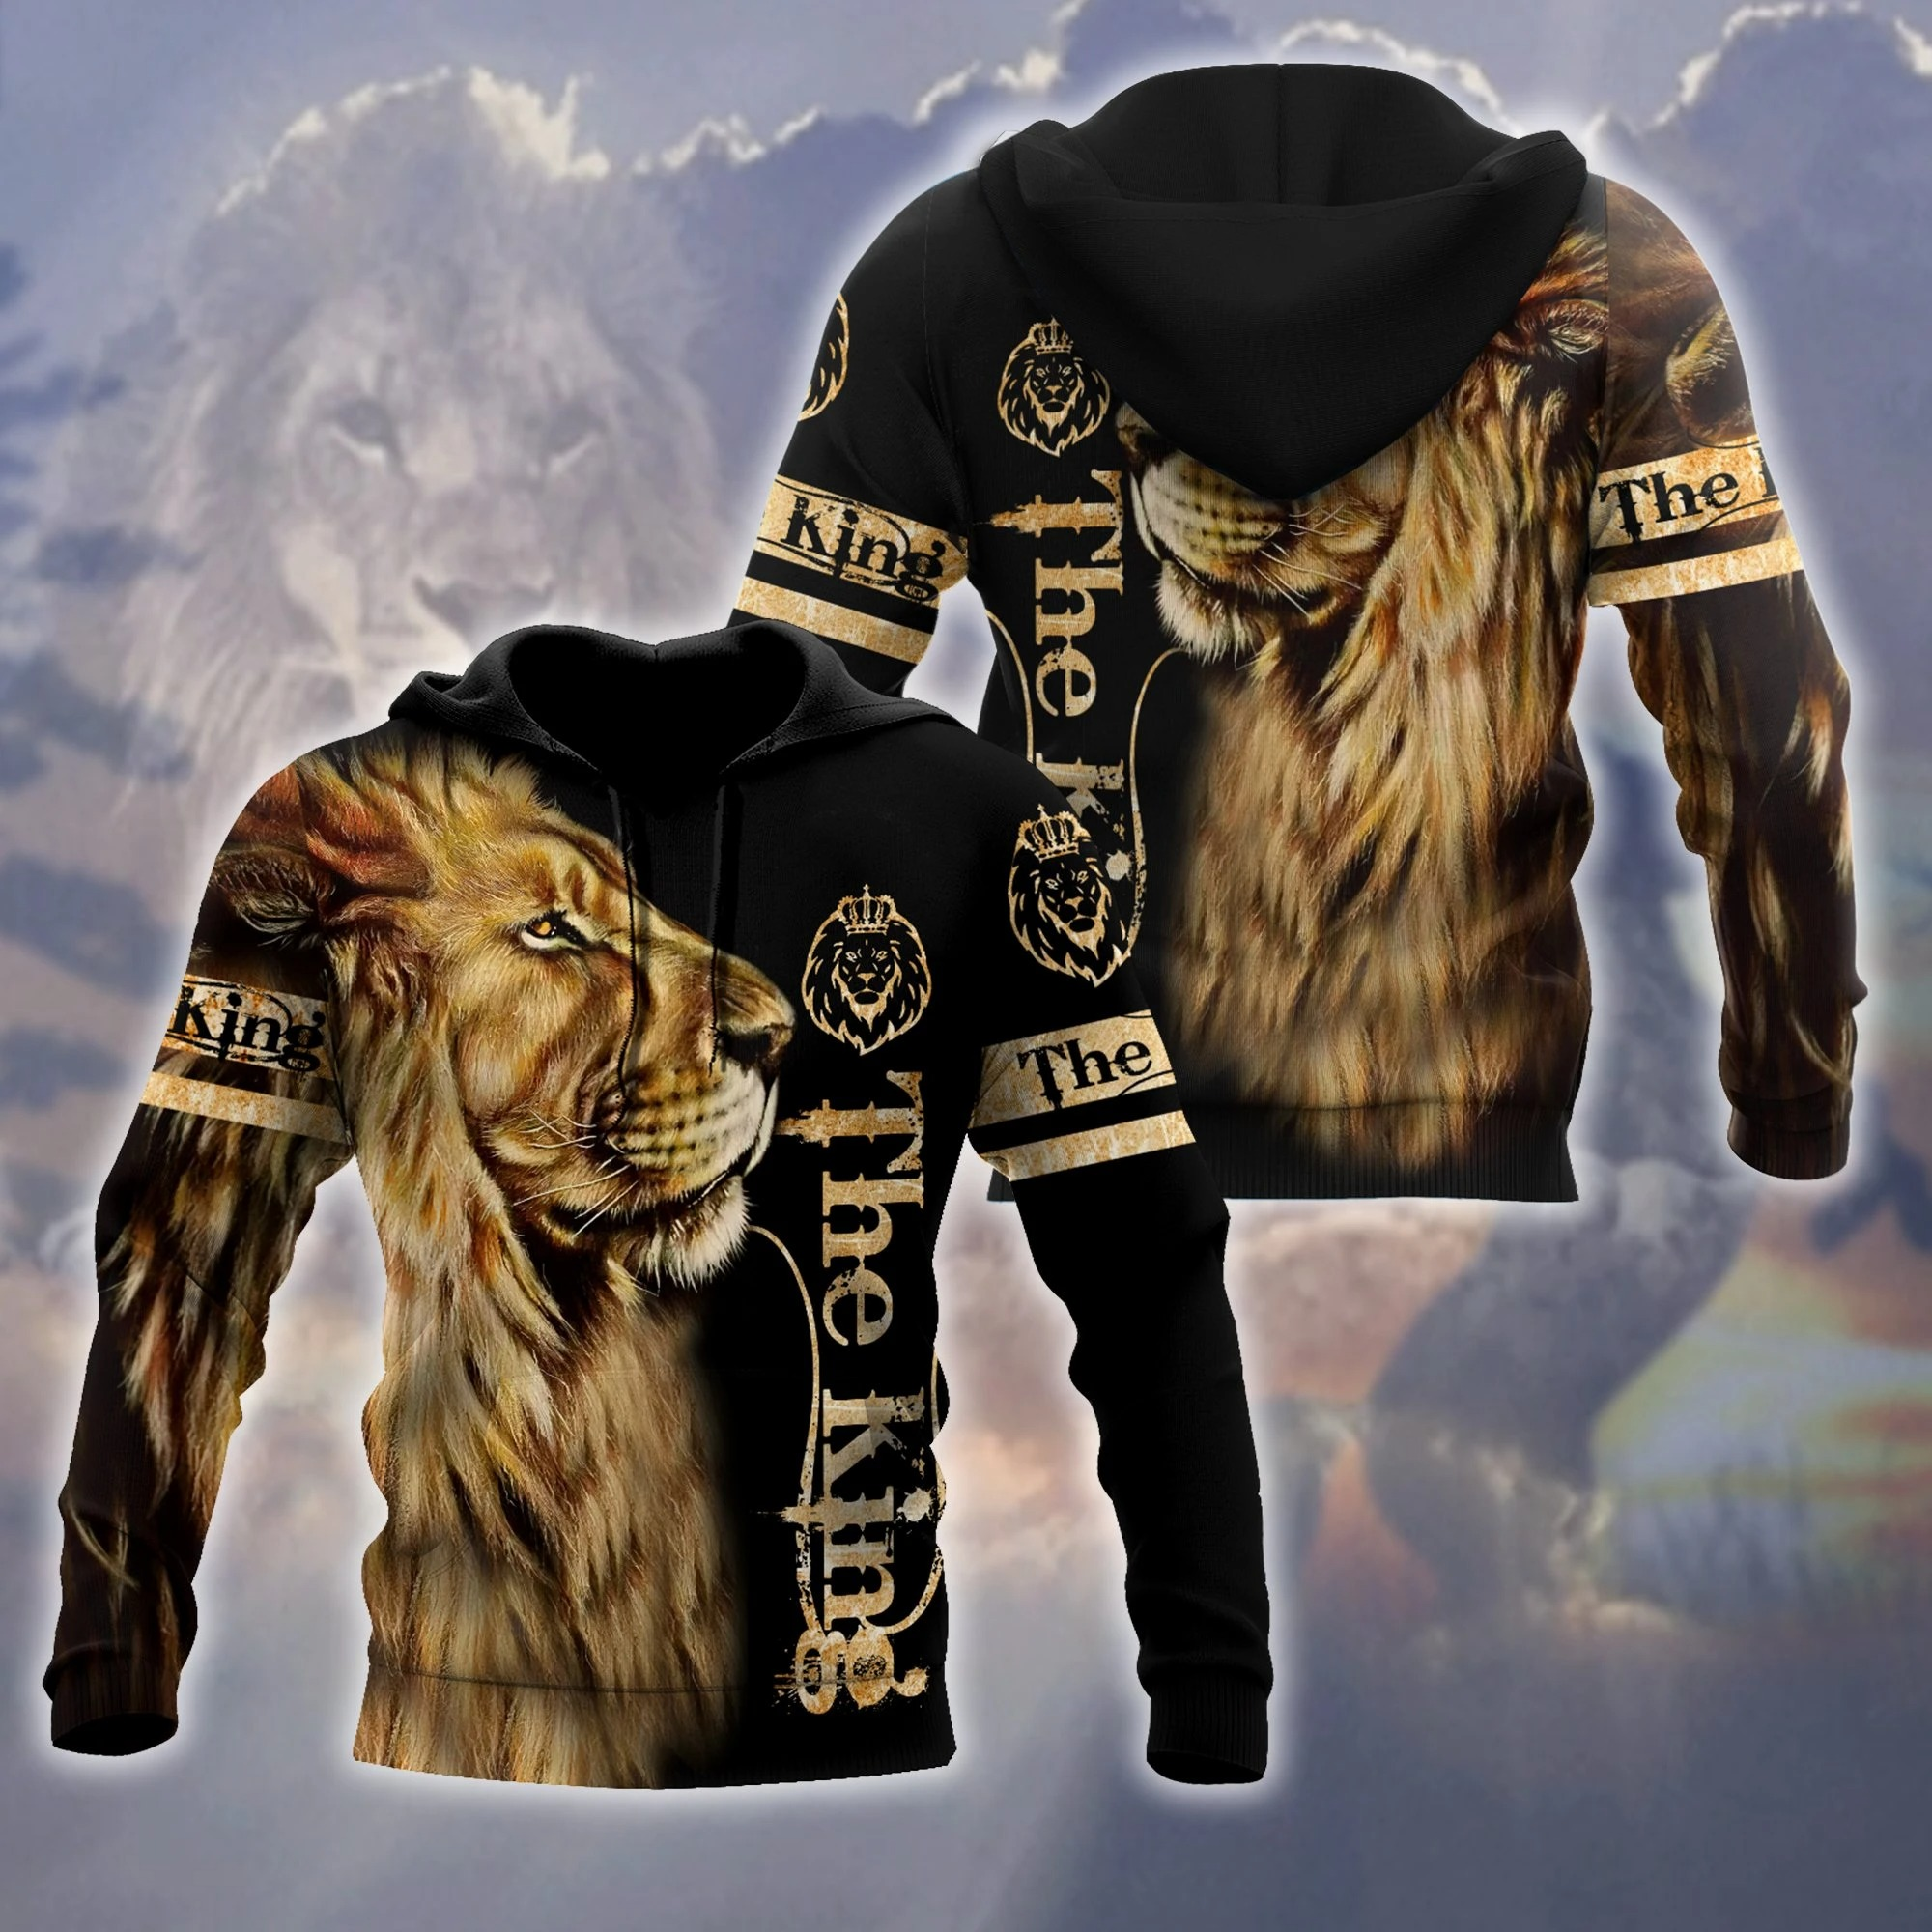 King lion 3d all over printed unisex hoodie and shirt - ad